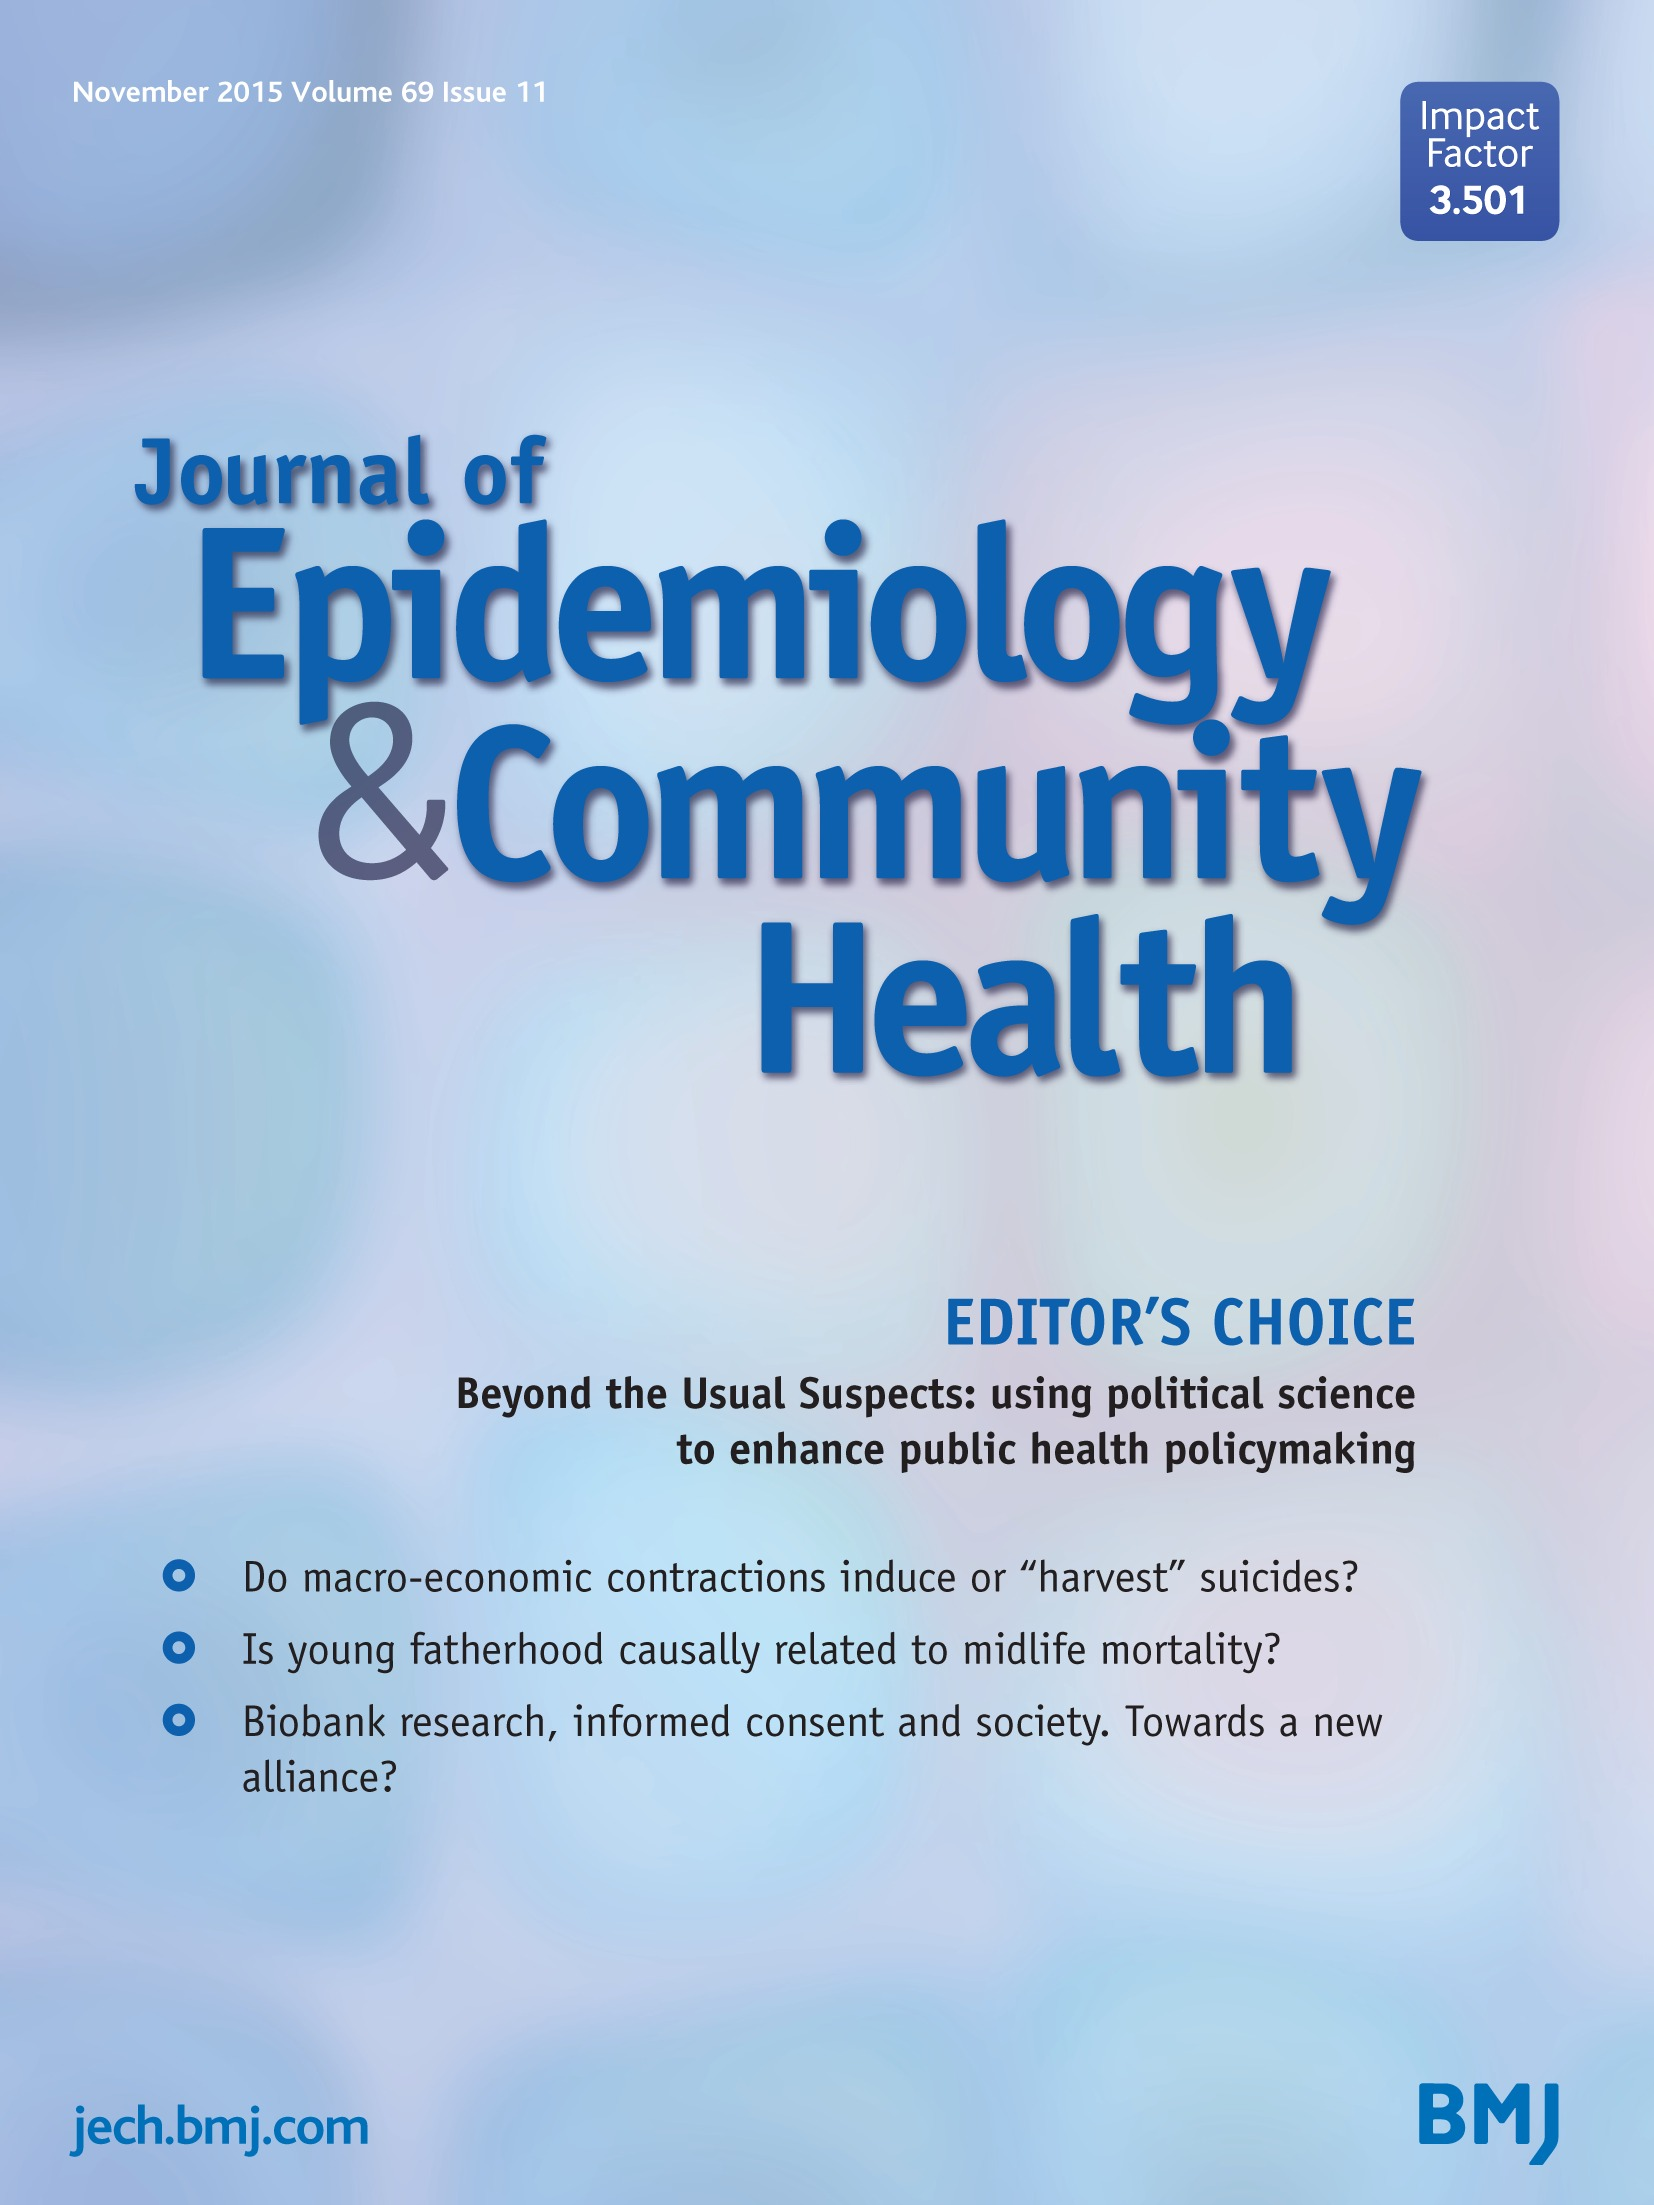 The influence of chronic health problems and work-related